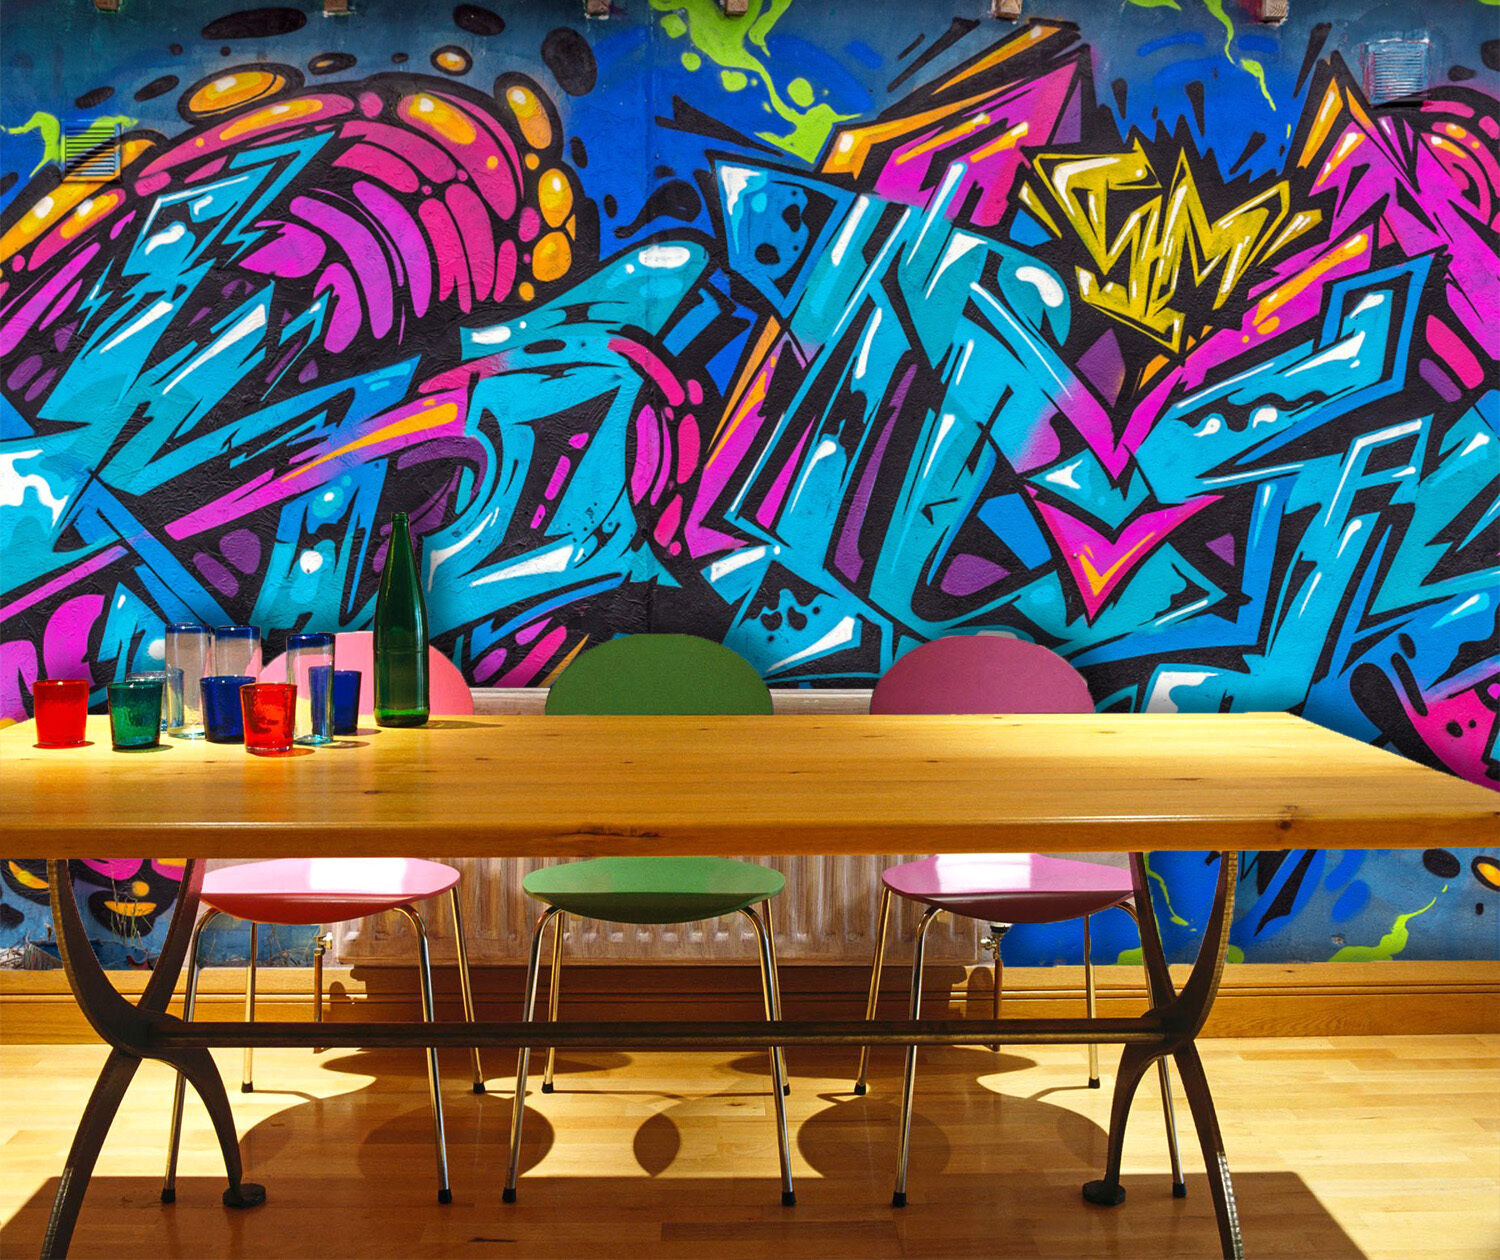 3D bluee Painting Graffiti 424 Wall Paper Wall Print Decal Wall Deco Indoor Wall